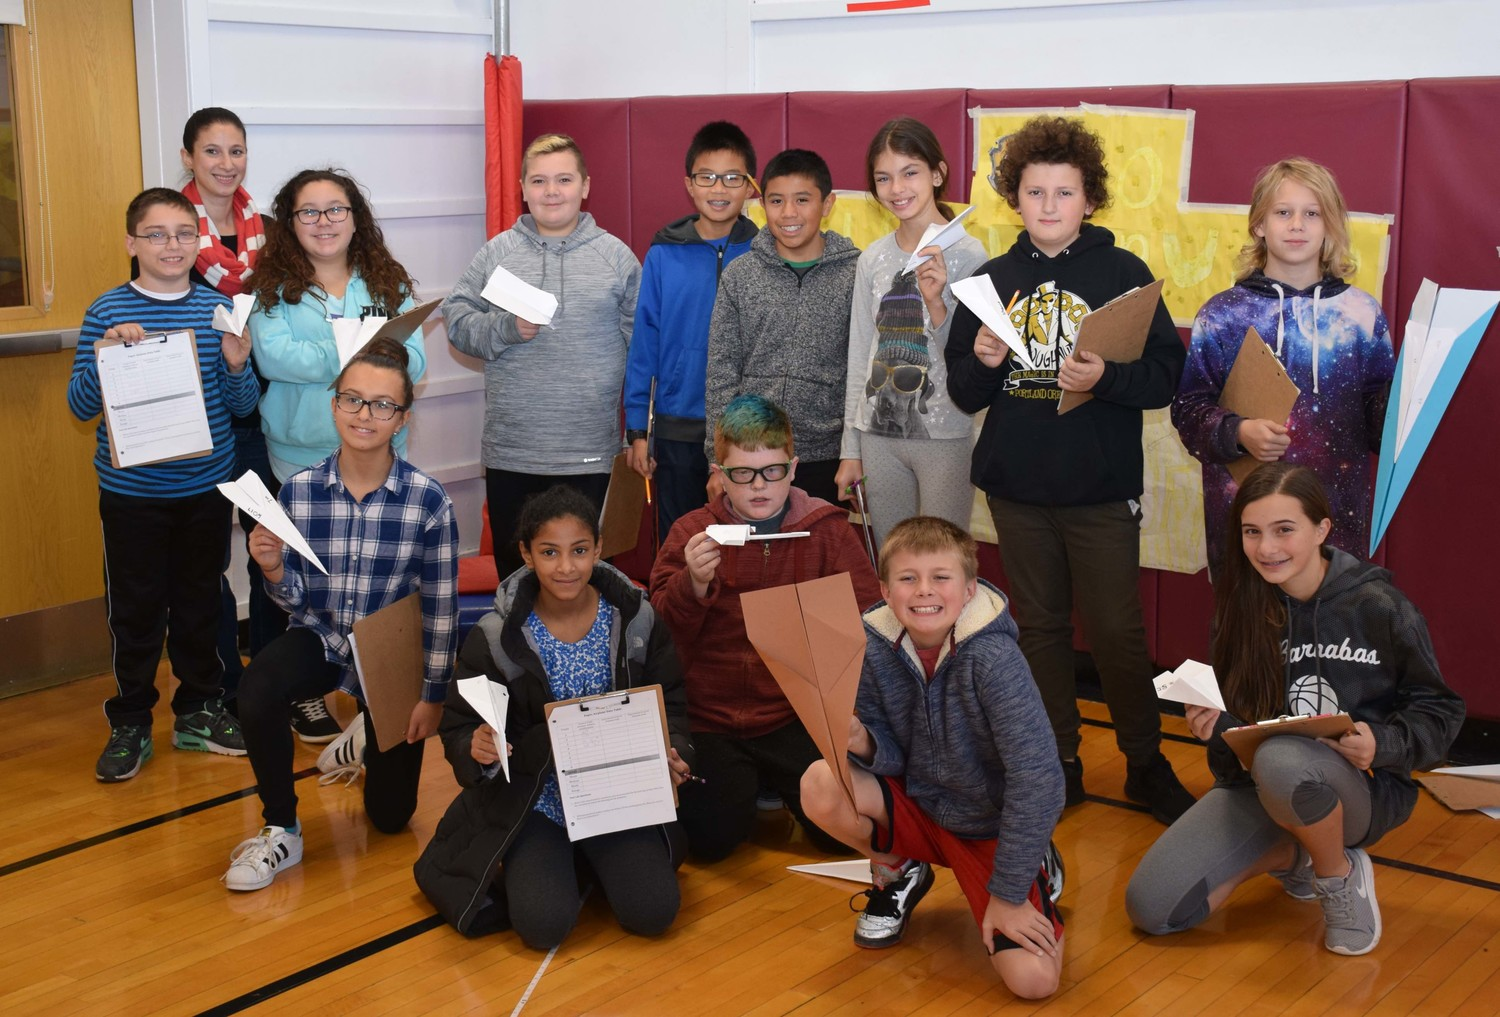 Sixth-graders in Stephanie Schwartz's class at Martin Avenue Elementary School designed and flew paper airplanes as part of a lesson on aerodynamics.